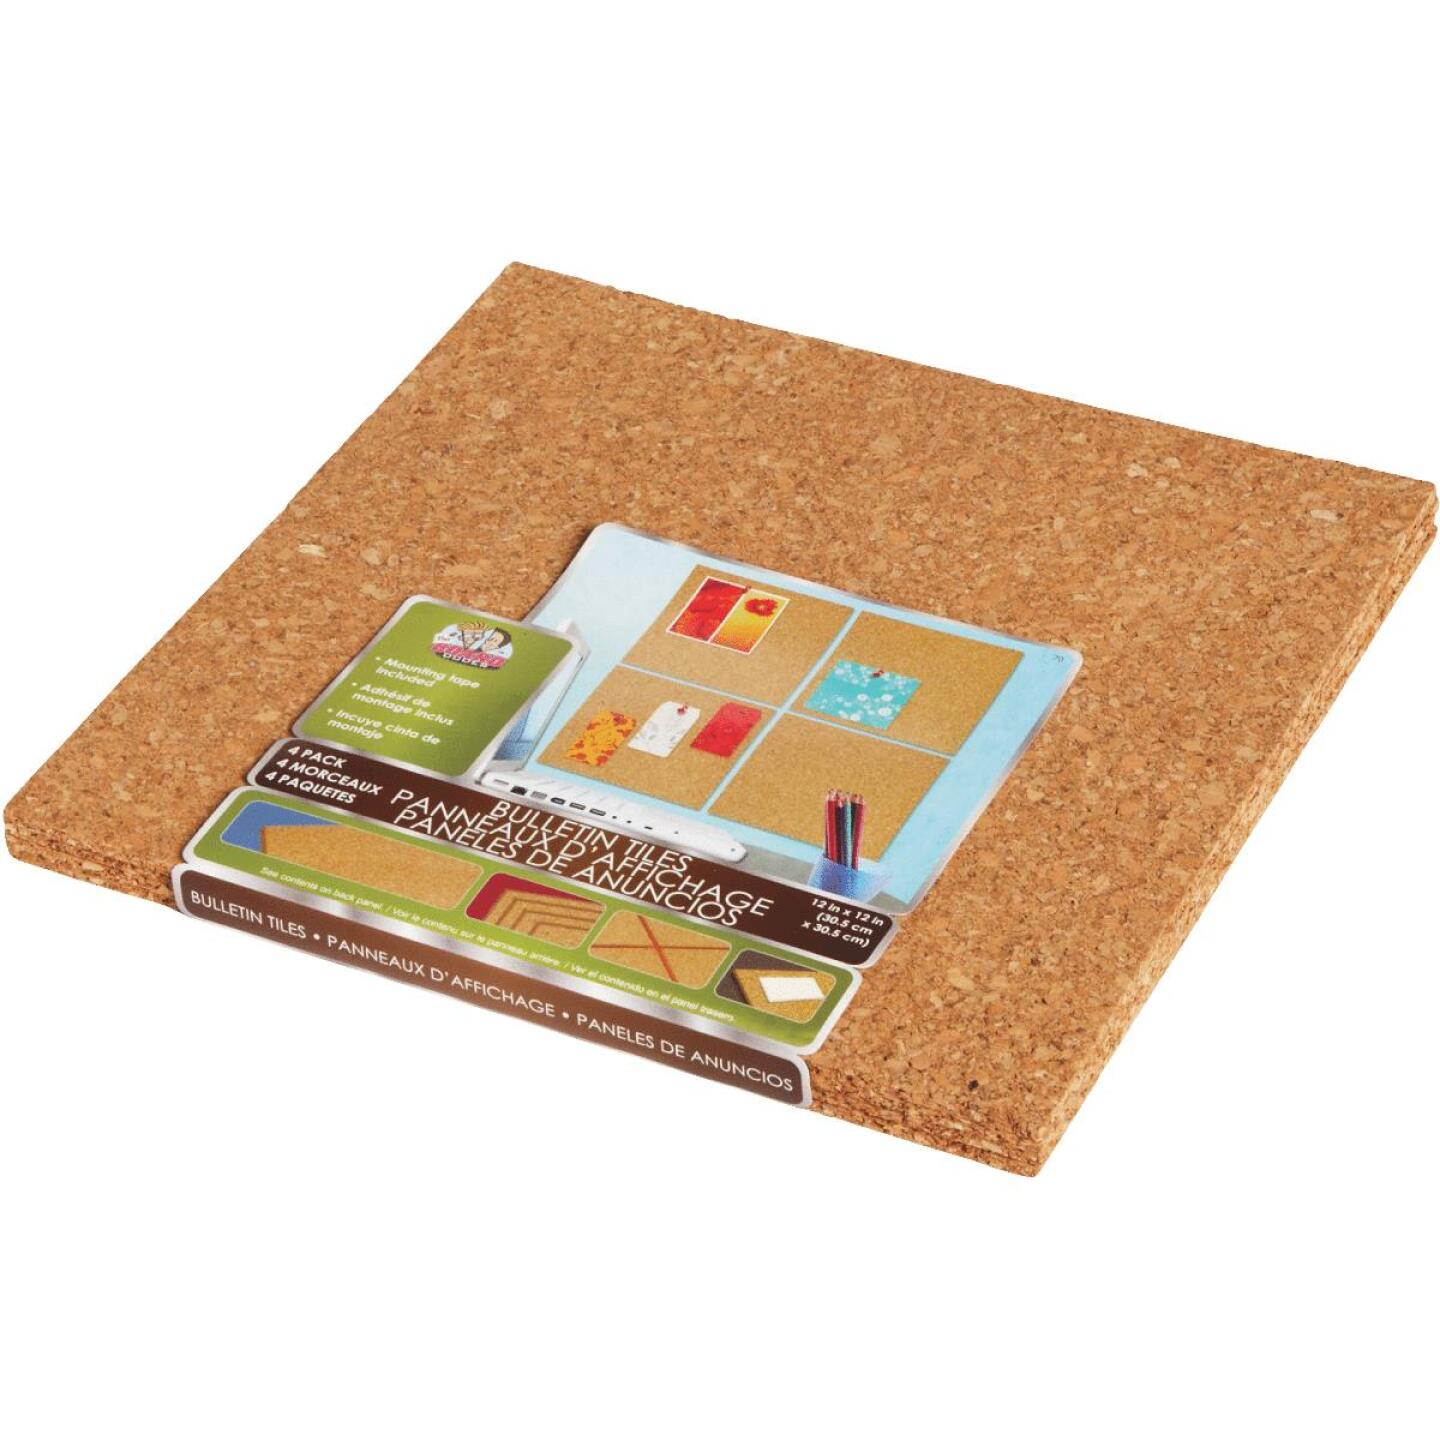 Board Dudes 12 In. x 12 In. Light Cork Tiles (4 Count) Image 3